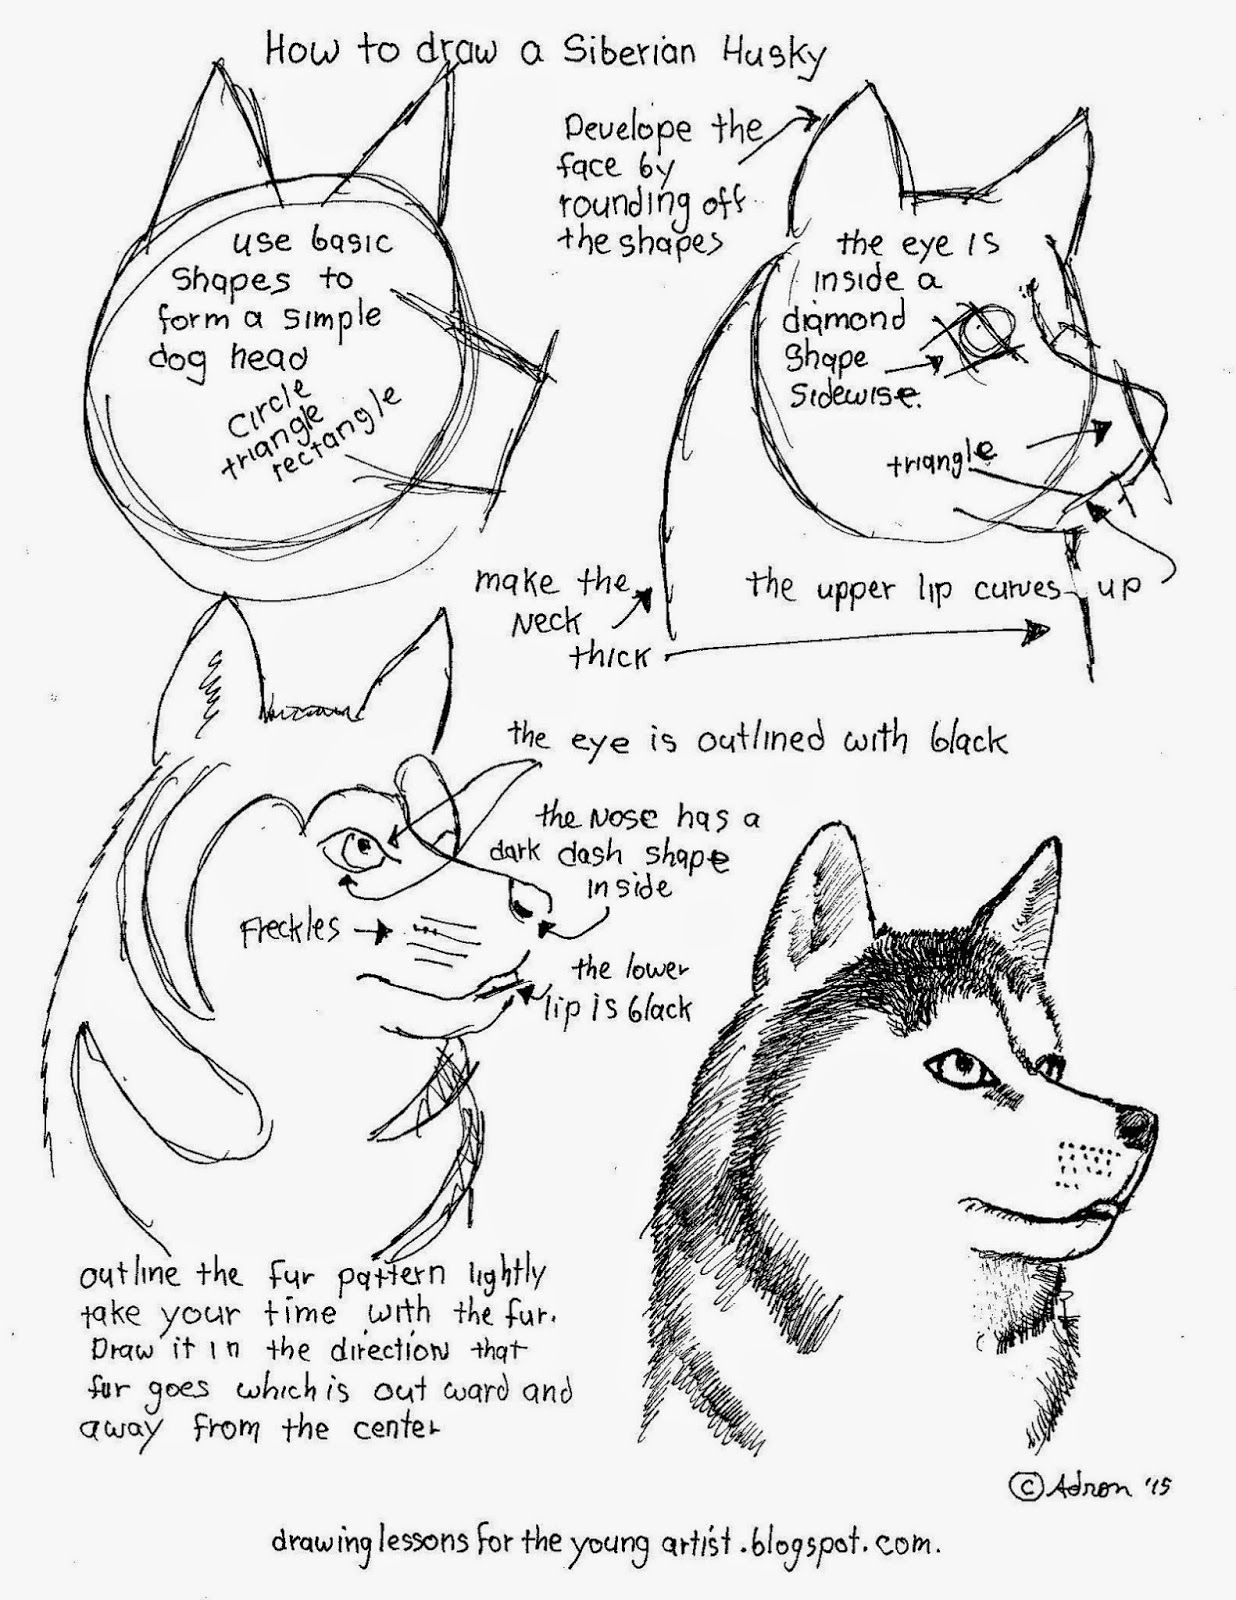 How To Draw Worksheets For The Young Artist: How To Draw A Siberian | Free Printable Drawing Worksheets